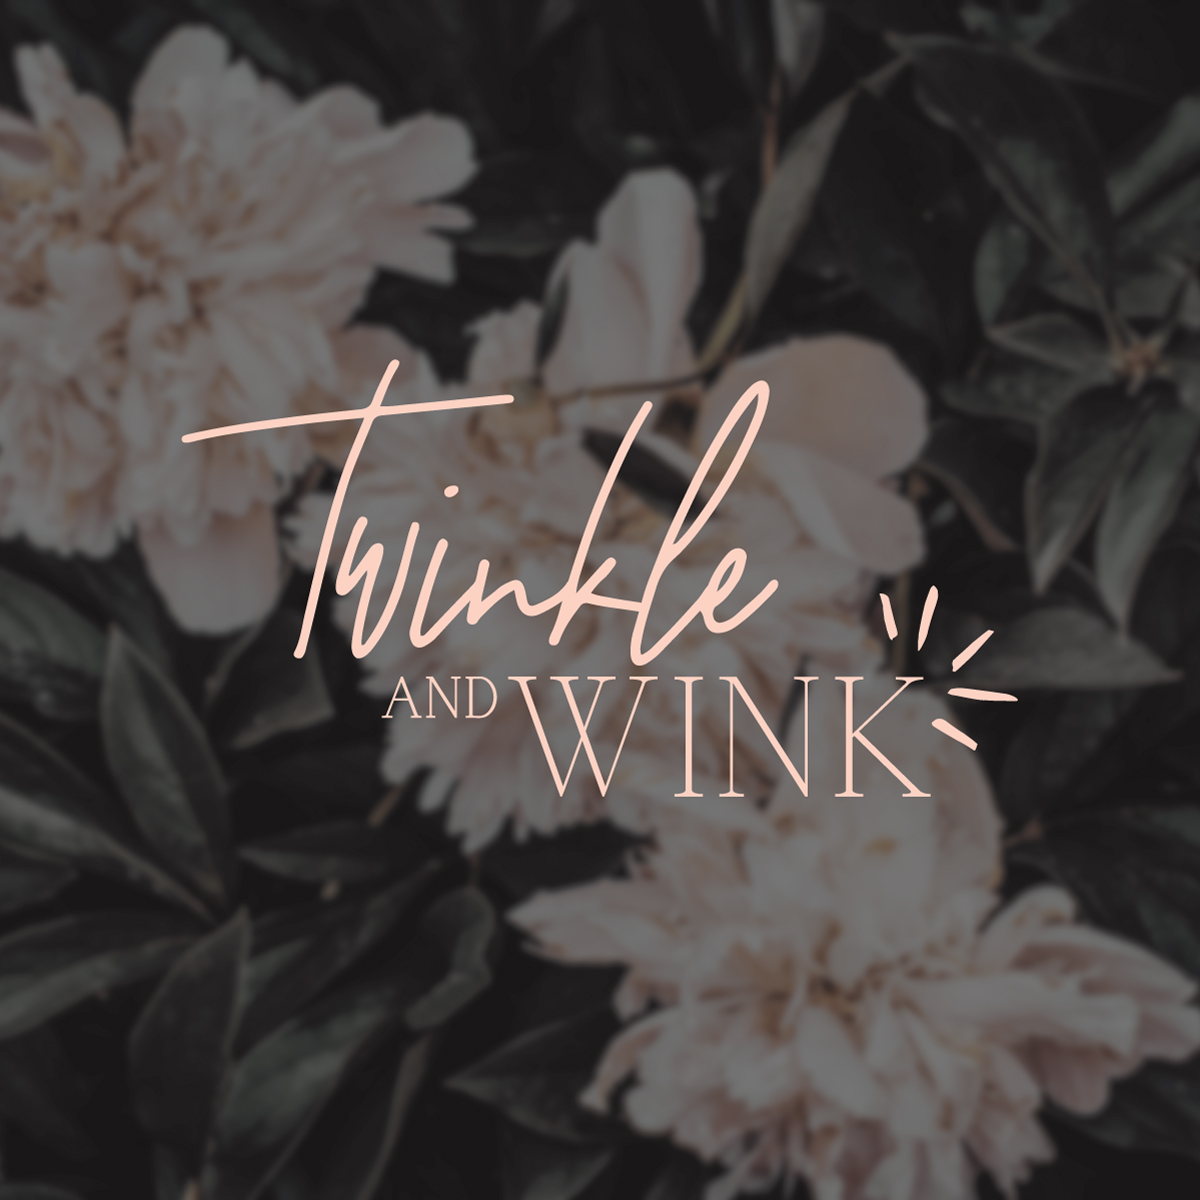 / twinkle and wink branding for eyelash boutique /